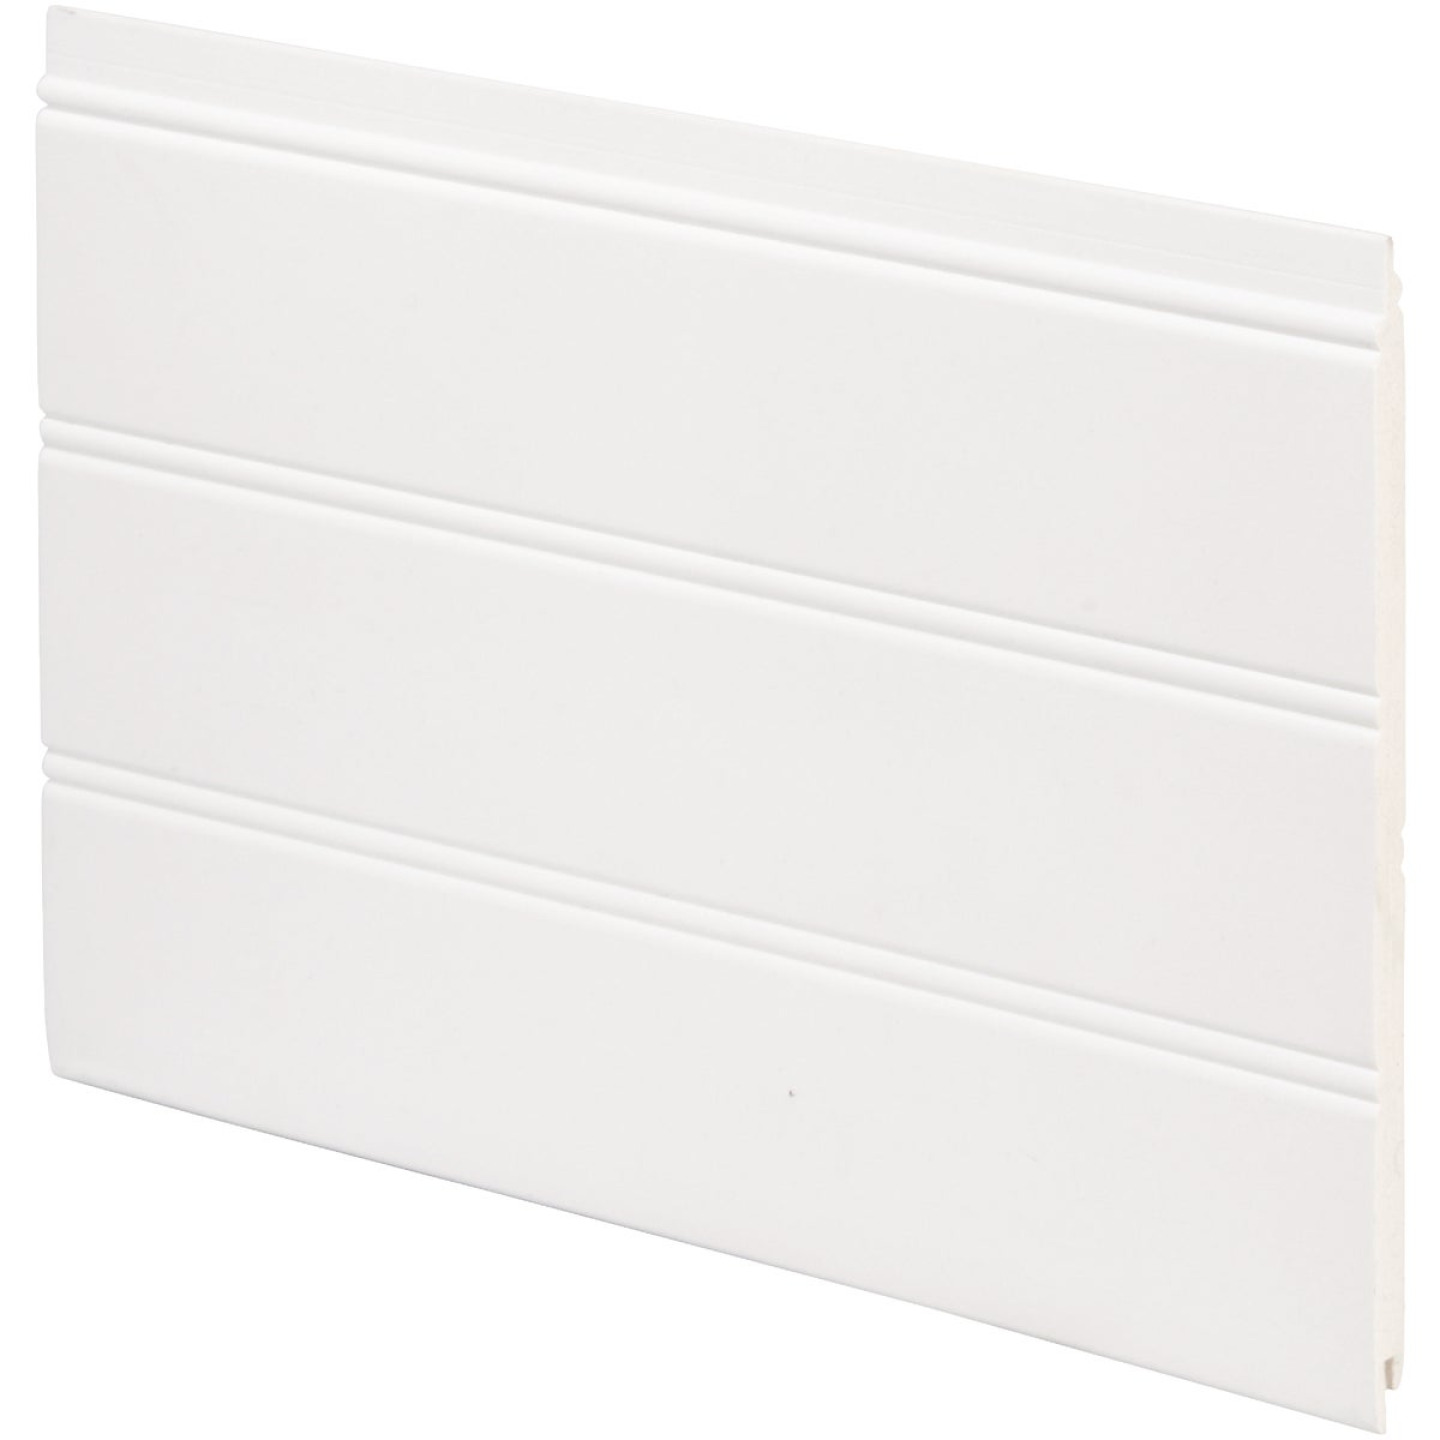 Inteplast Building Products 7-1/2 In. x 1/4 In. H. x 34 In. L. White PVC Reversible Beaded Wainscot Kit (6-Pack) Image 1